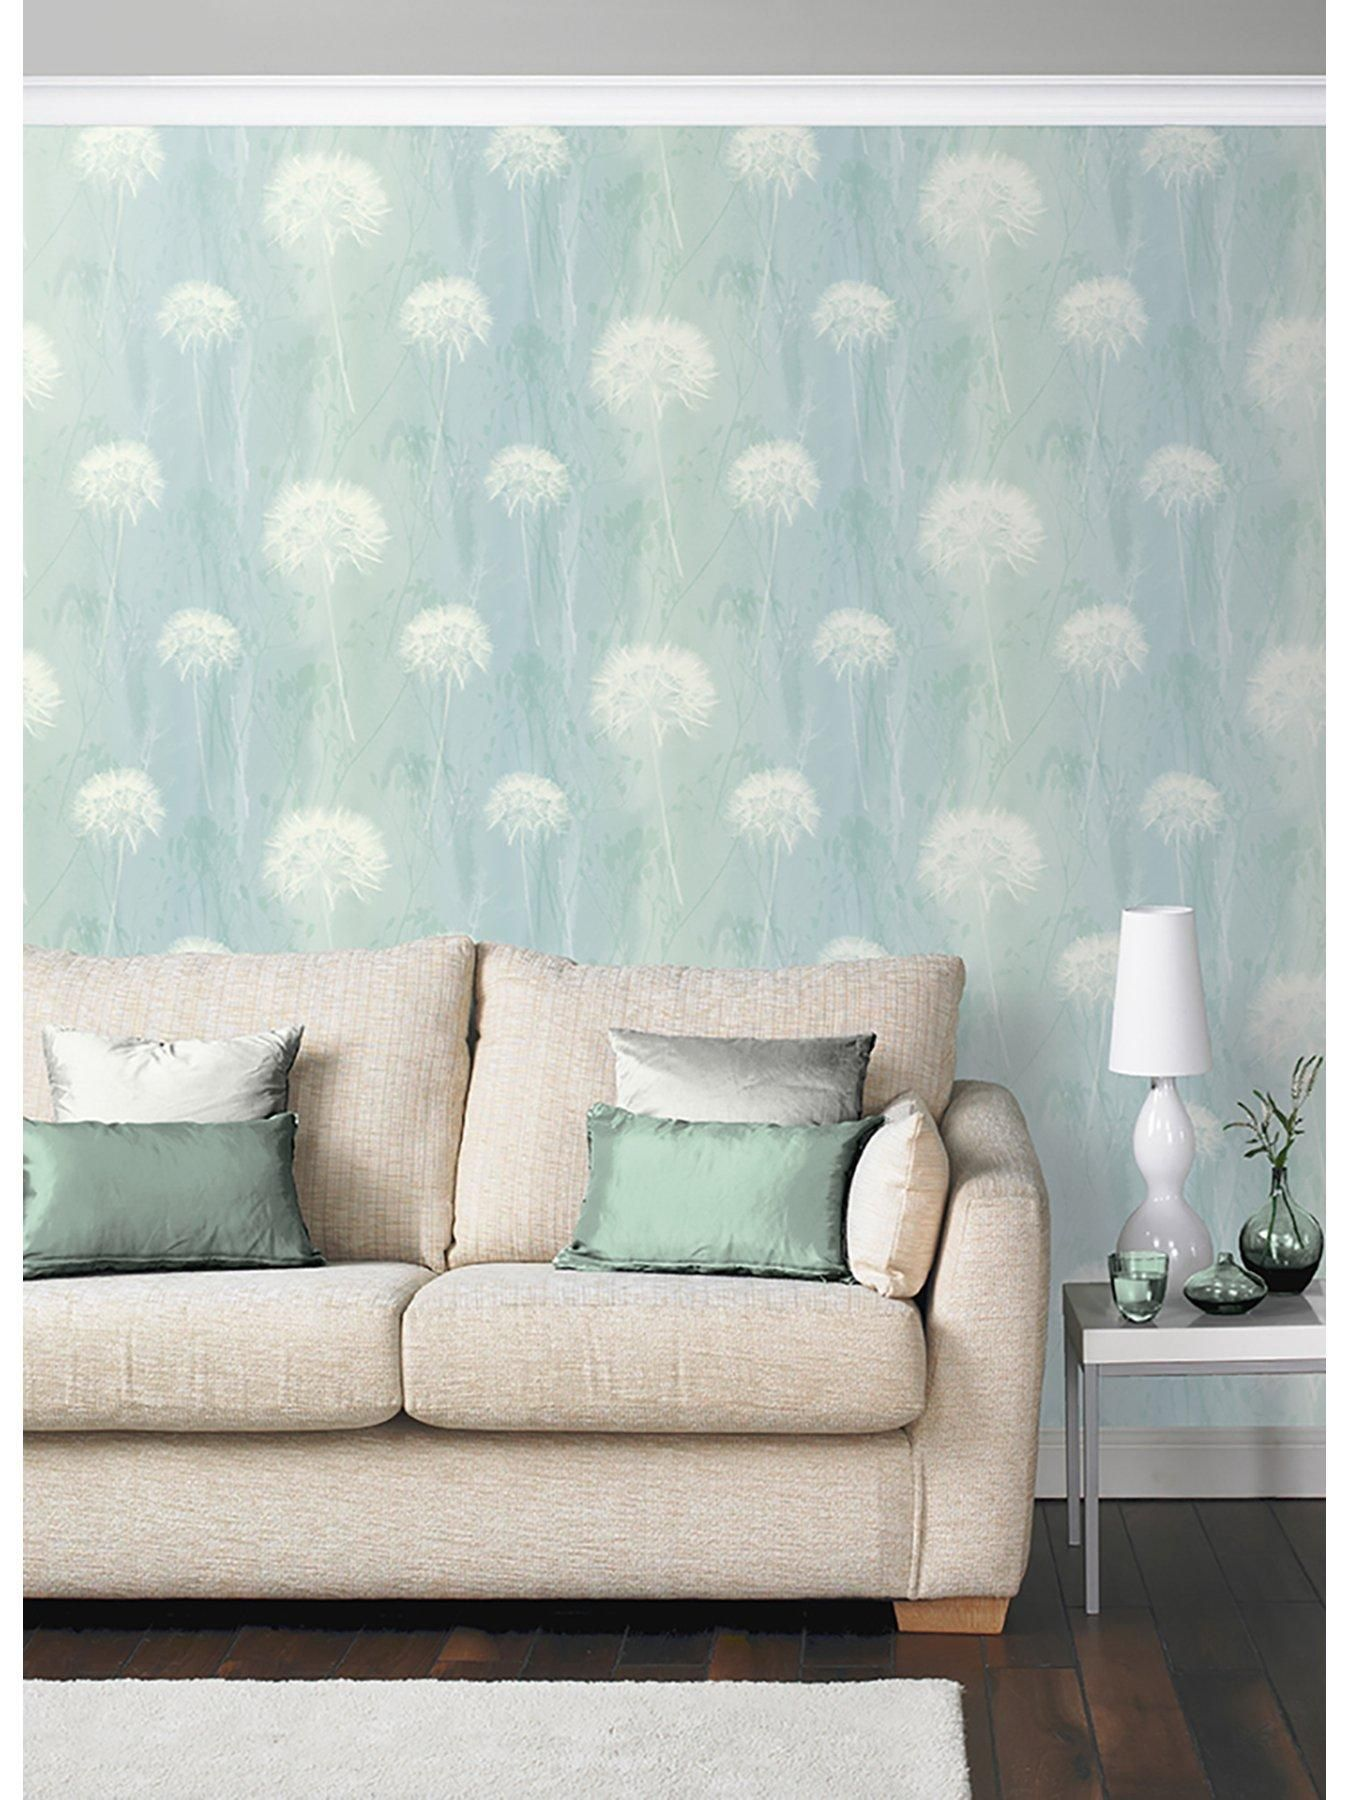 10 Best Wallpaper Ideas For Living Room Feature Wall